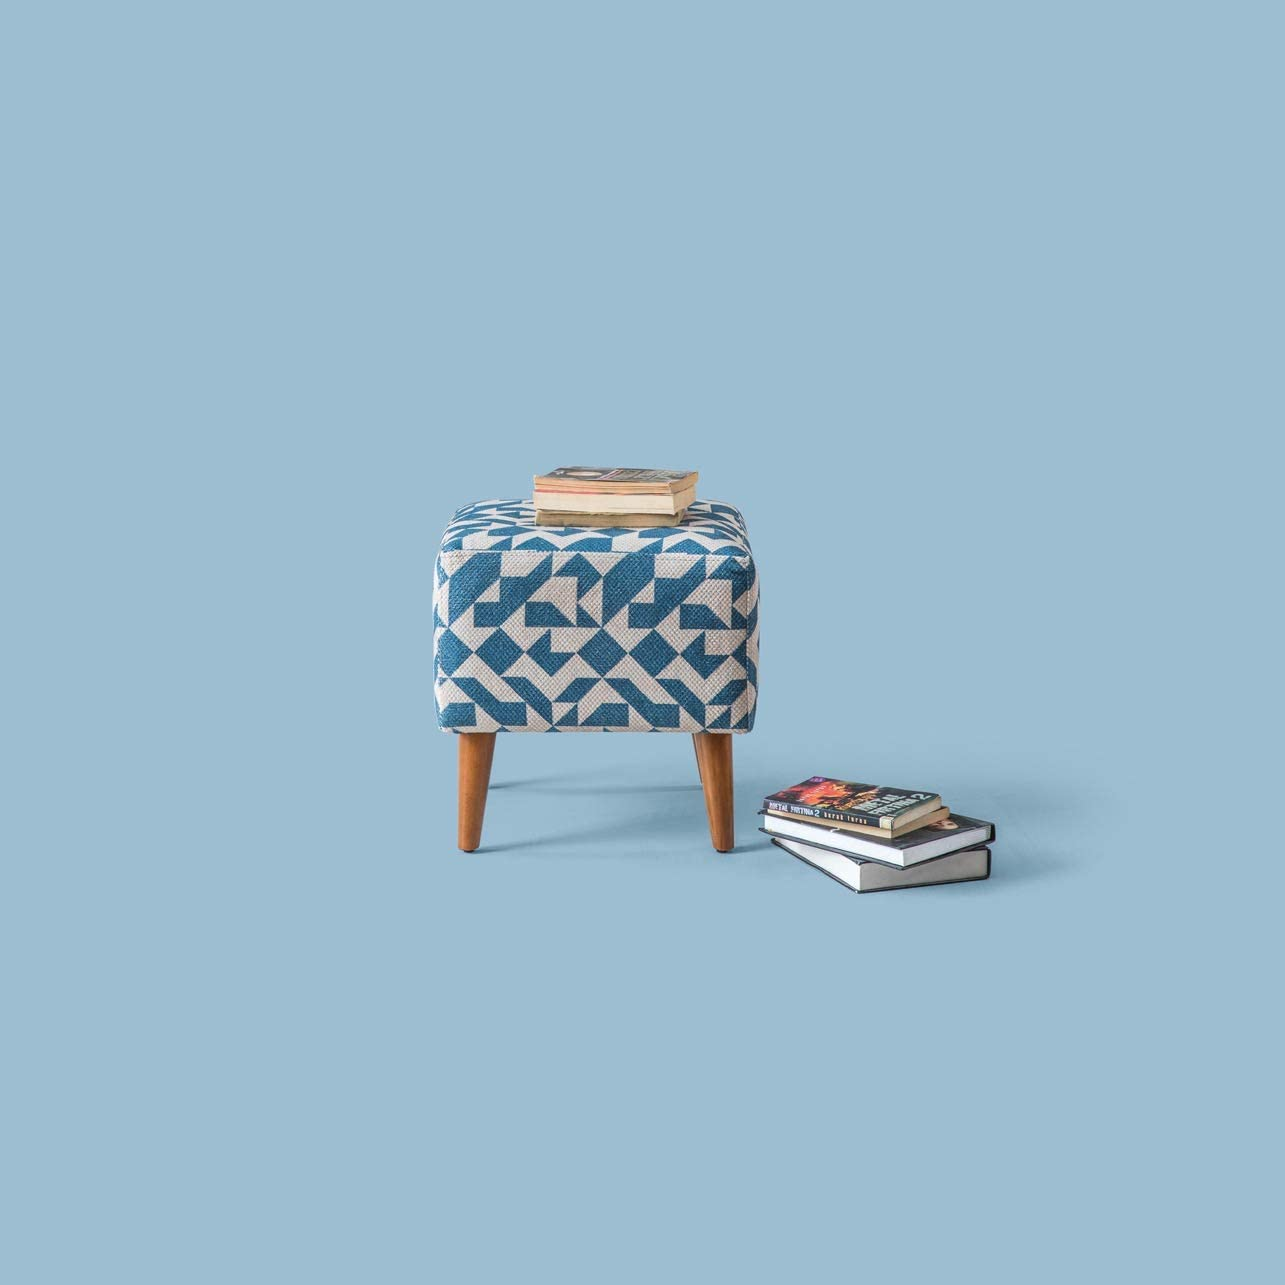 Pyramid Home Decor Mid Century Modern Fabric Ottoman Stool for Vanity - Square Ottoman Seat with Wood Legs - 16.25 x 16.25 x 16.25 Inch Foot Stool Ottoman